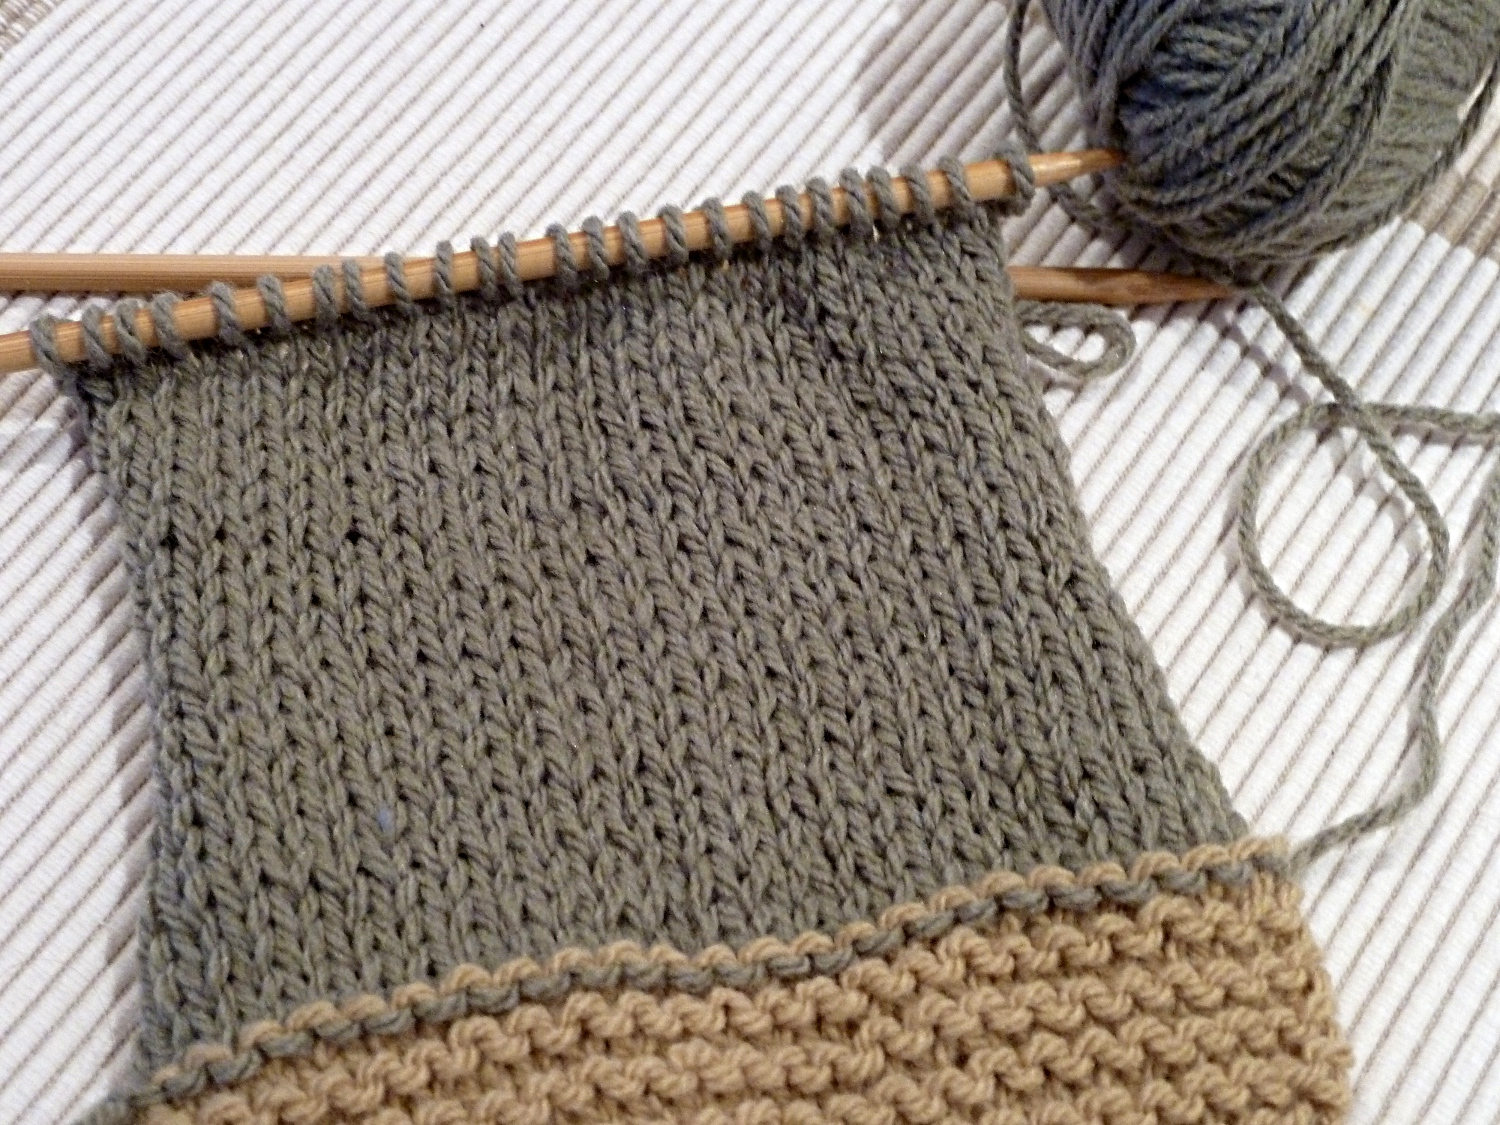 Increase Knit Stitch Beginning Row : Knitting for beginners #s 5 & 6 - A Stitching Odyssey